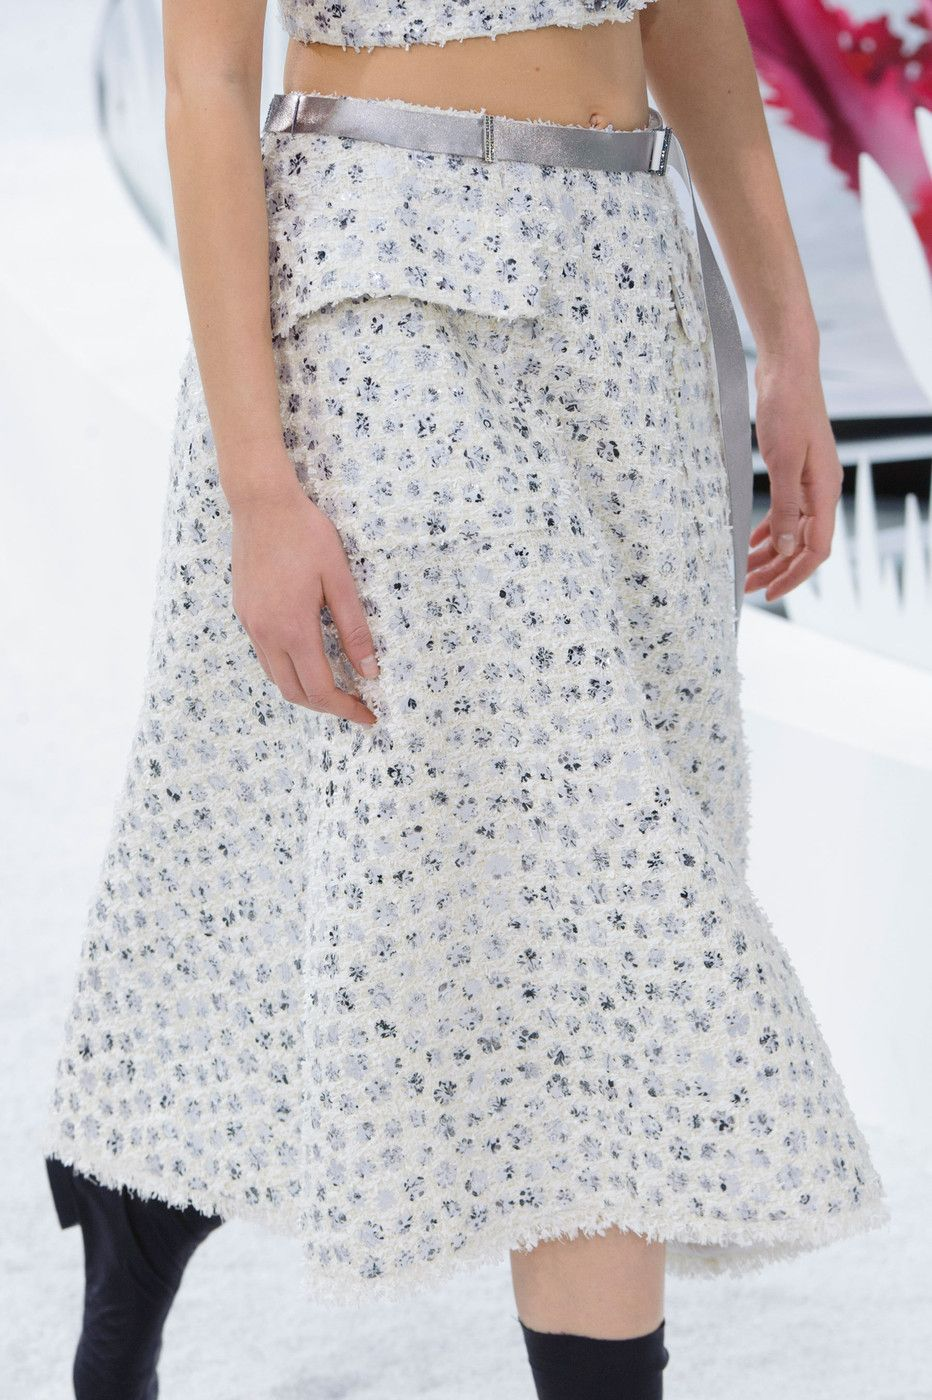 Chanel - Haute Couture - Spring 2015